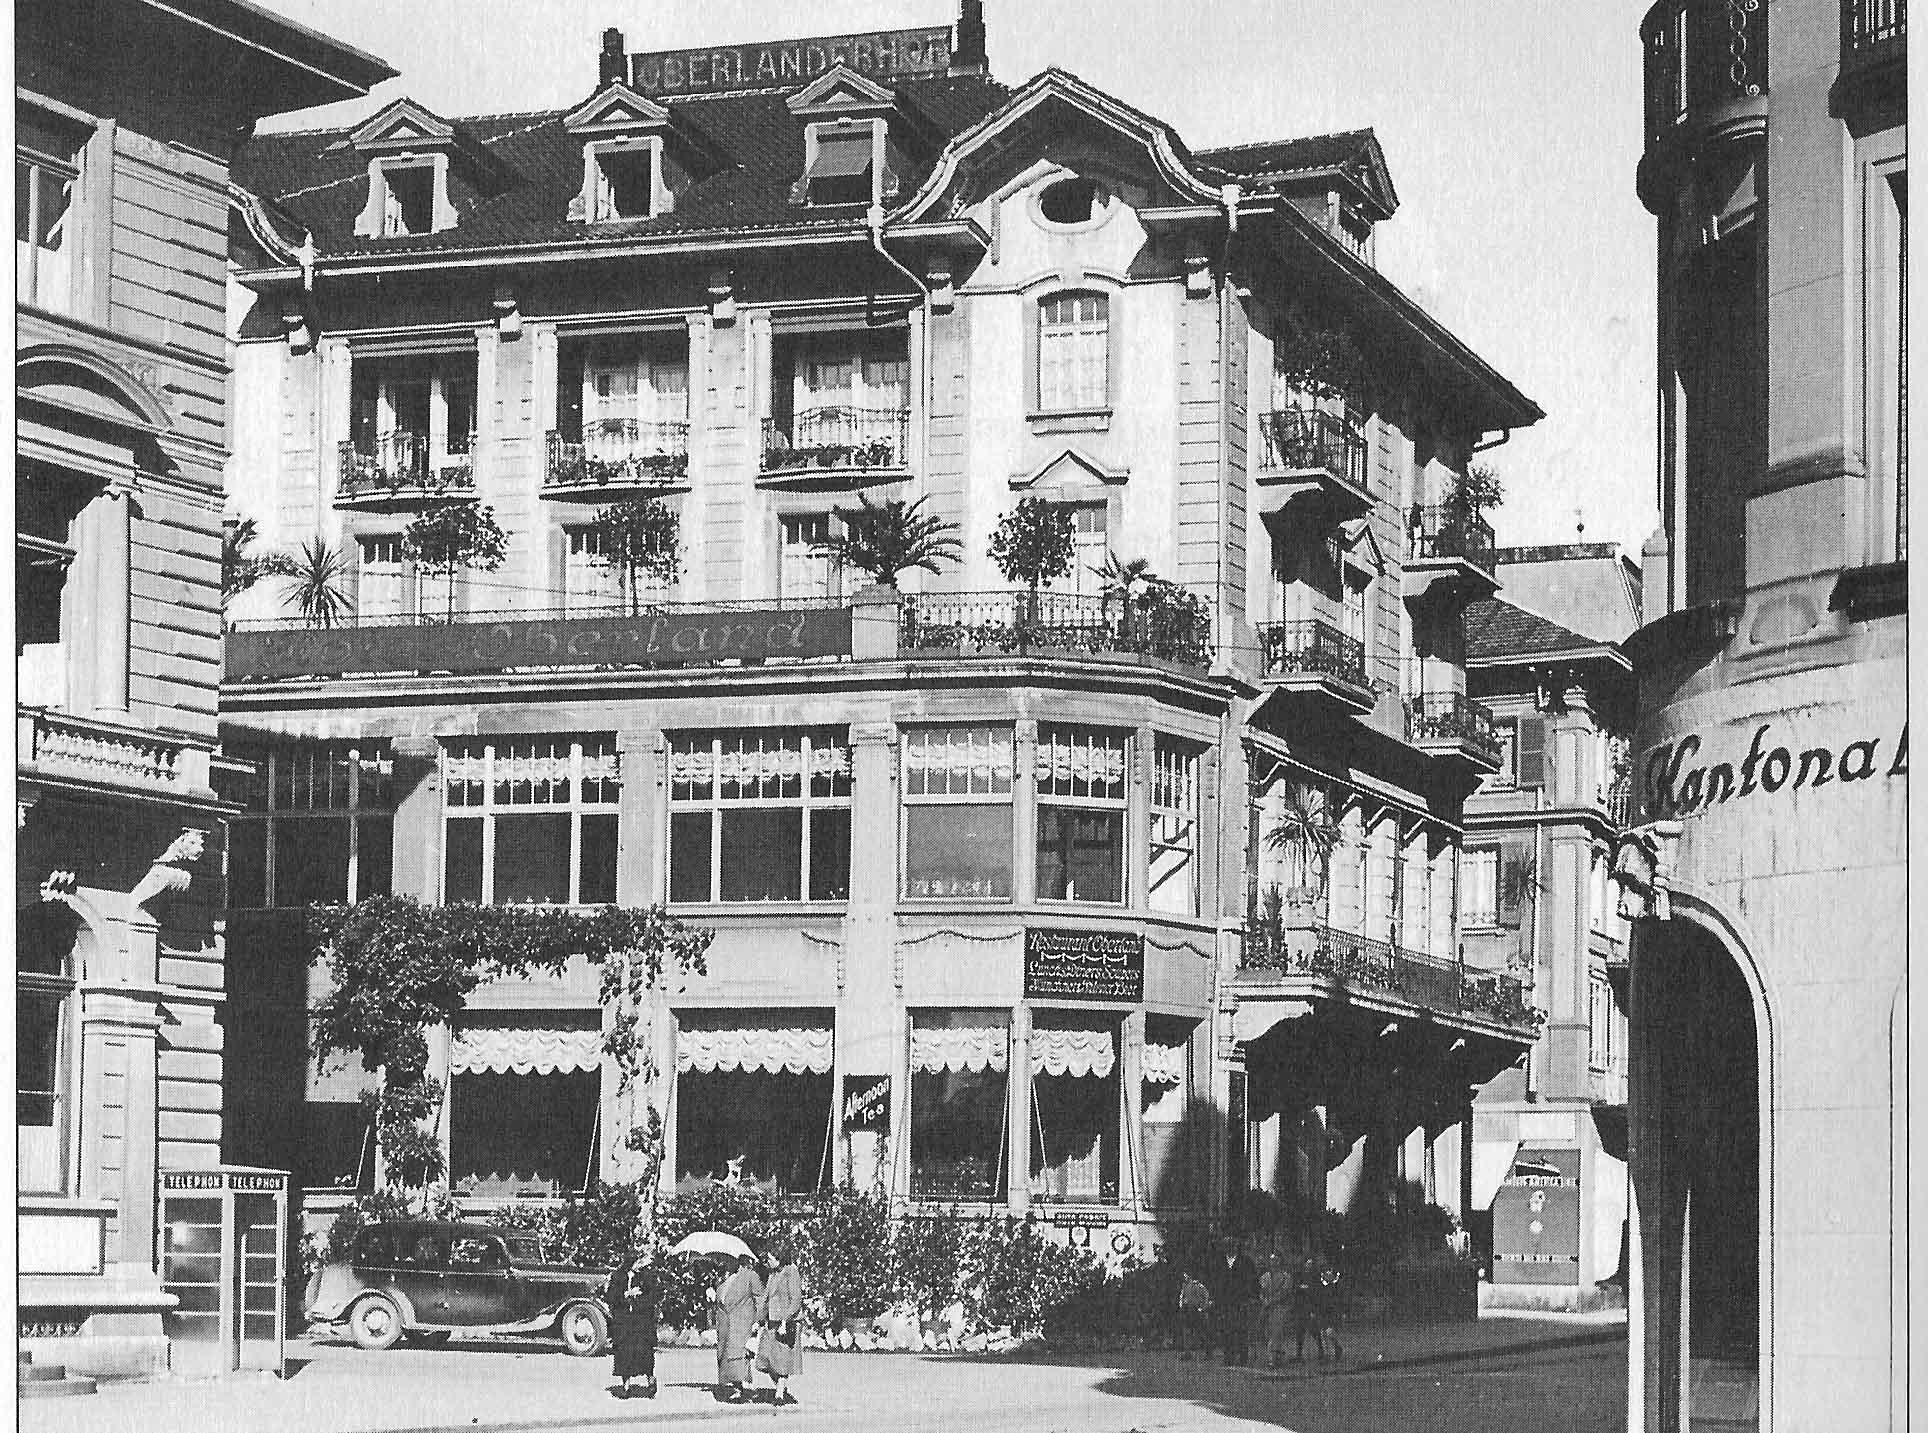 Hotel Oberland in Interlaken, um 1940 (Christoph P. Reber)